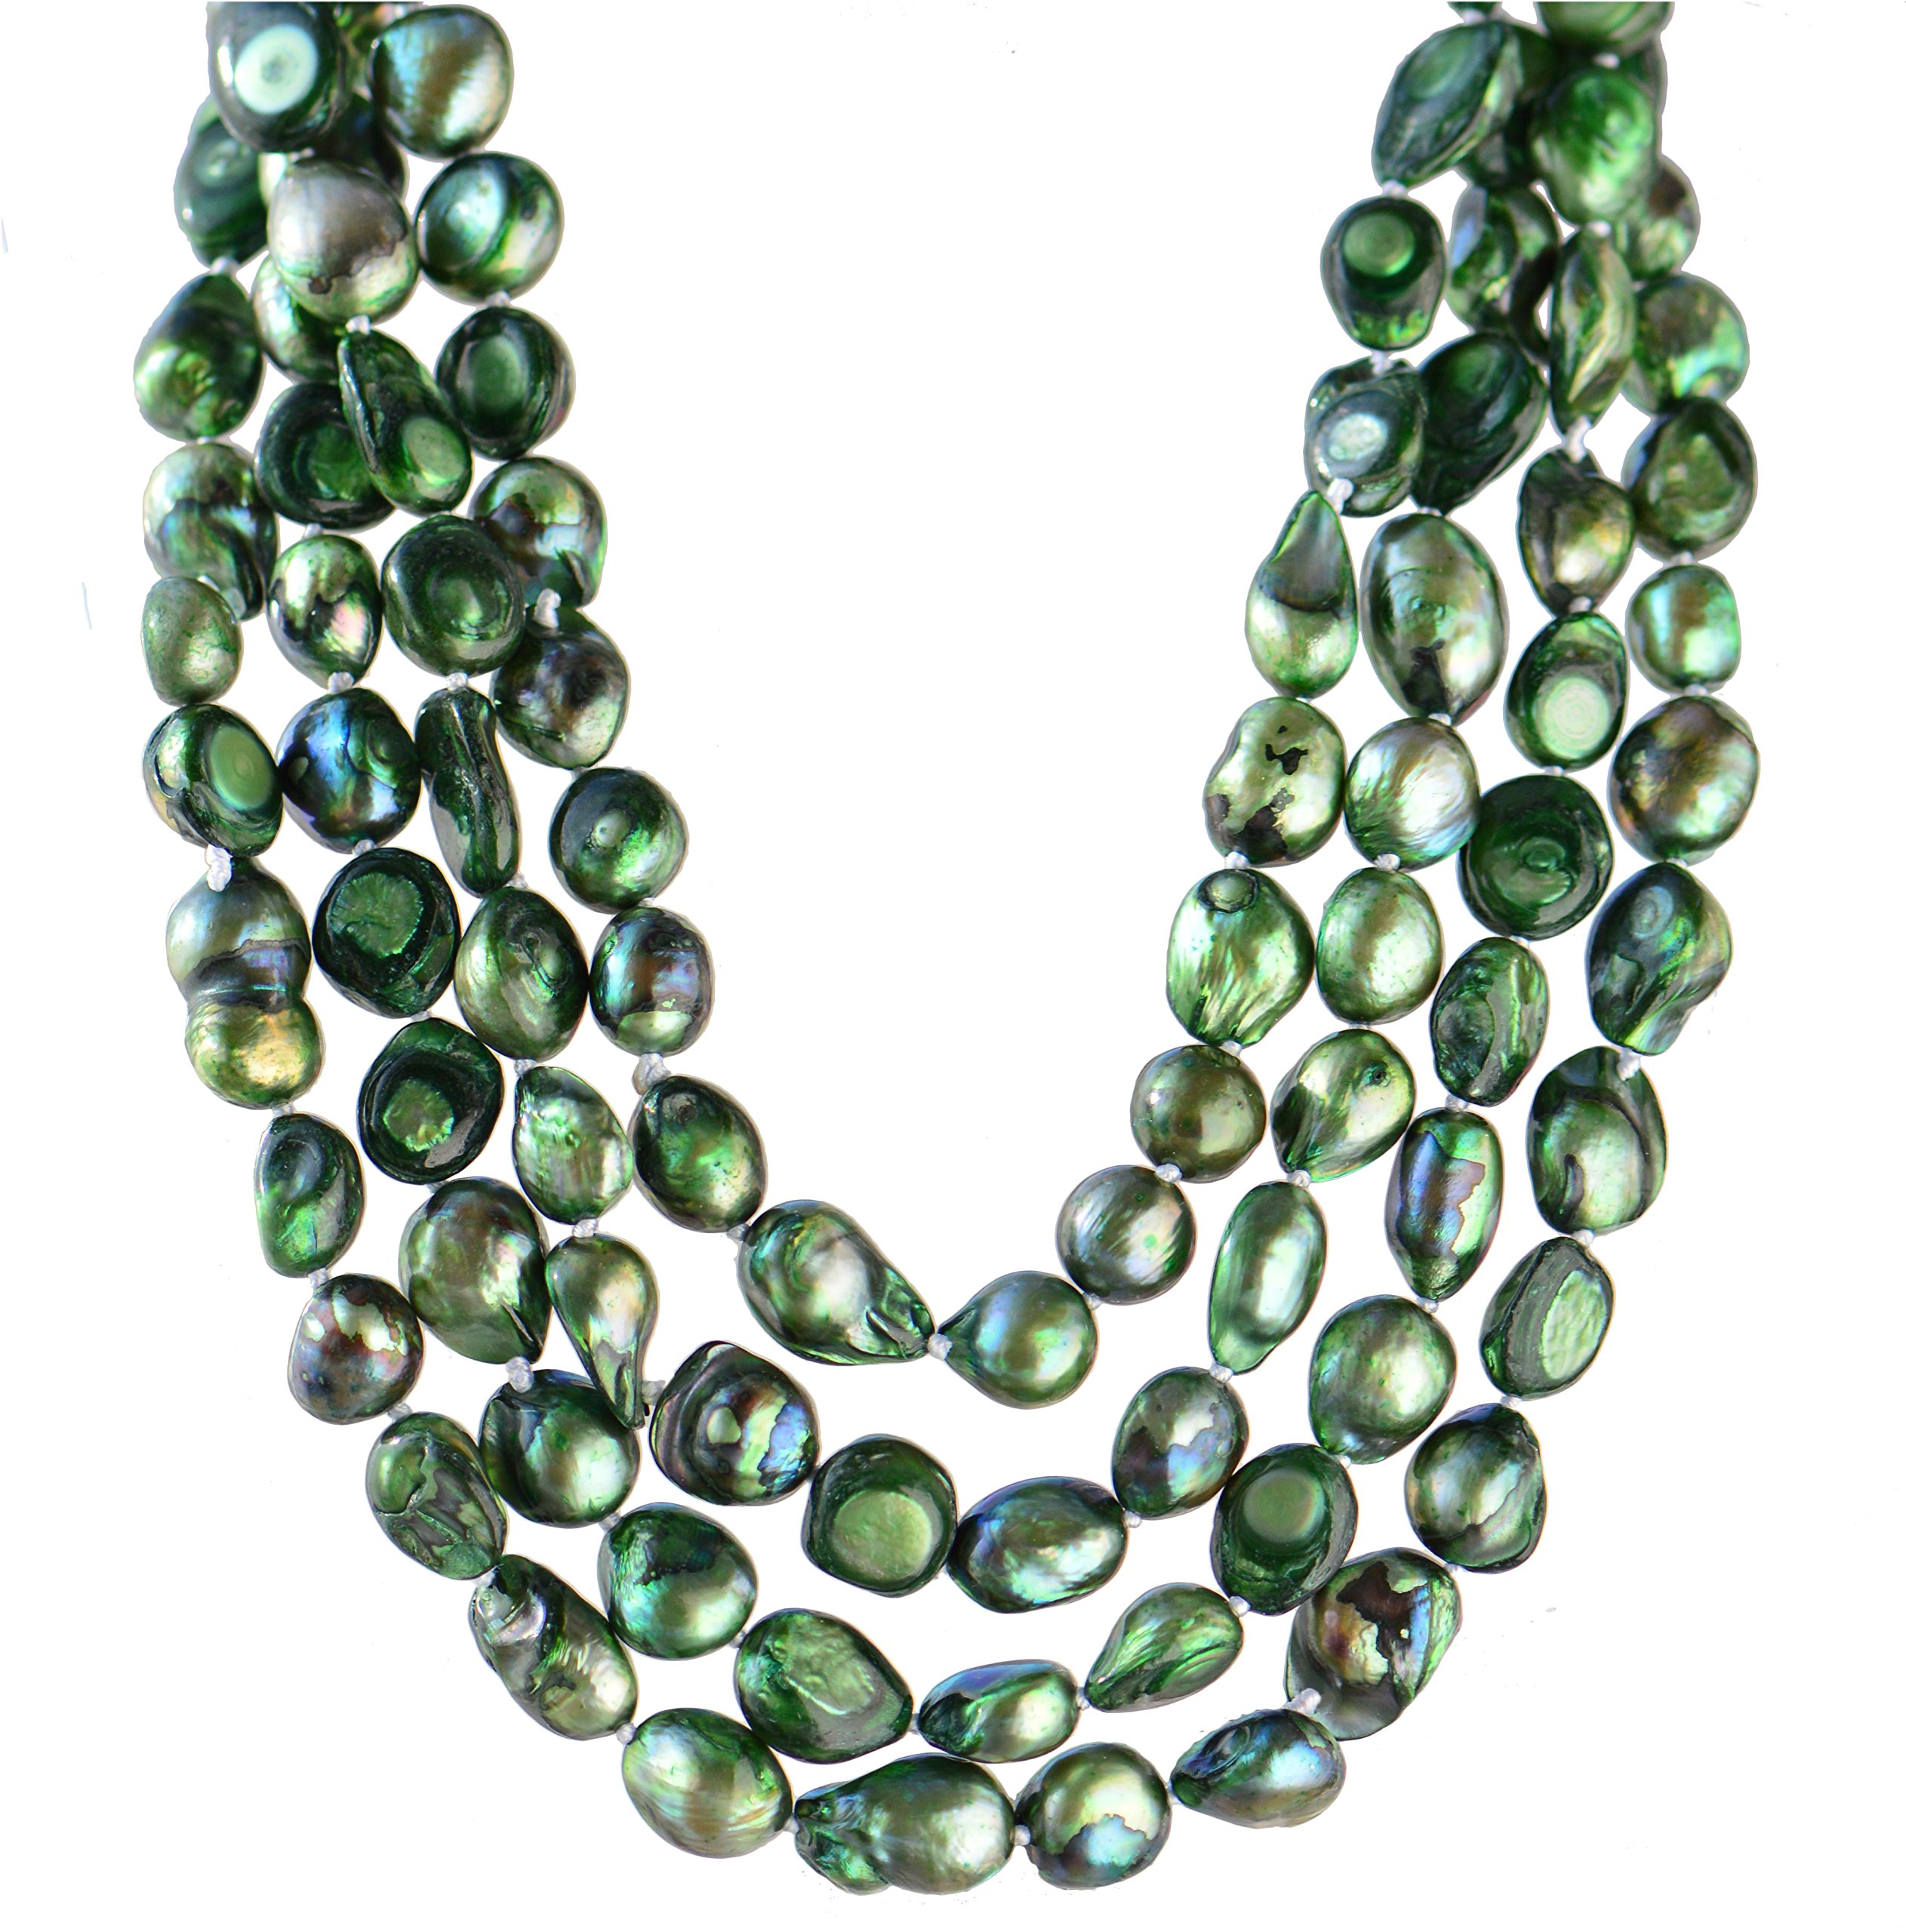 9-10mm Baroque Cultured Freshwater Pearl Necklace Strand Endless Palette Pure EMERALD 60''